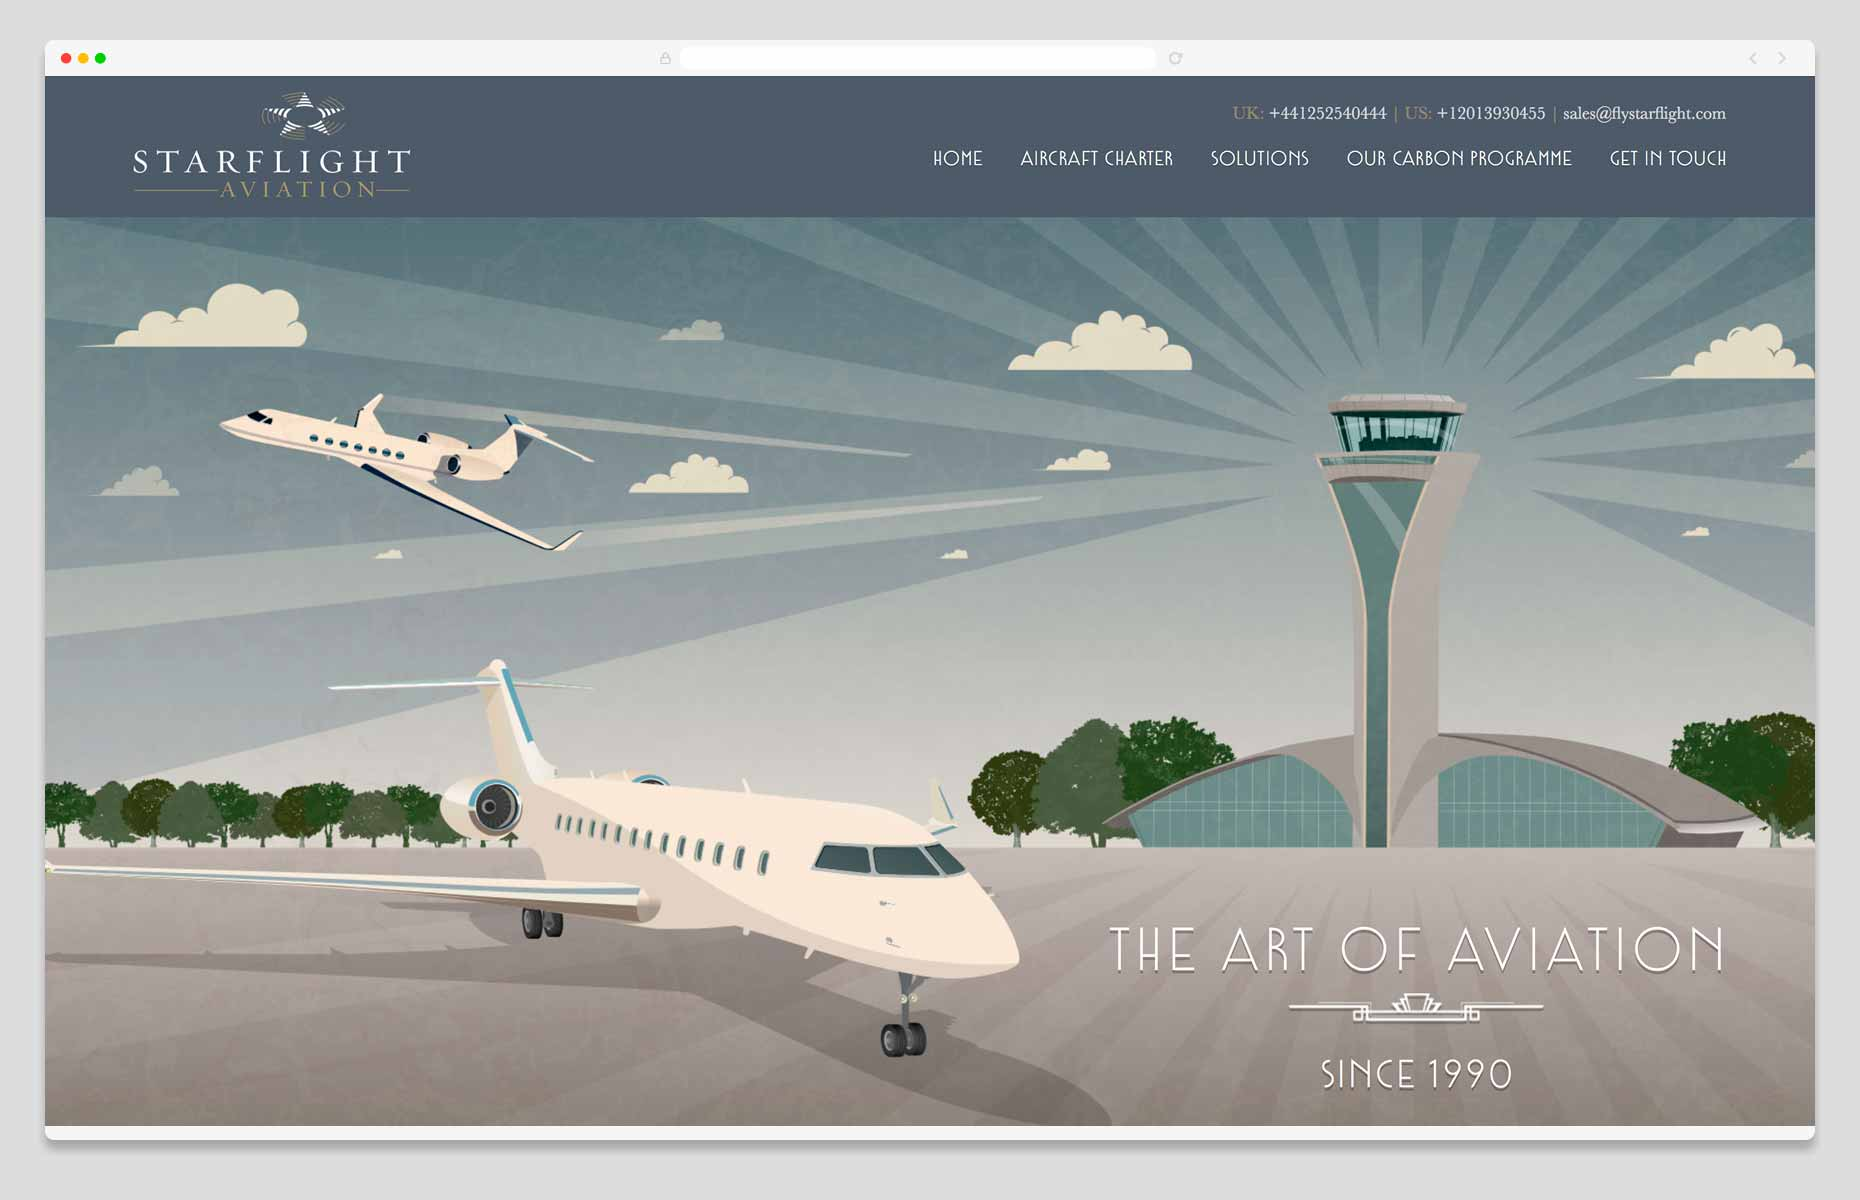 Website Design & Development - Starflight Aviation, Hampshire